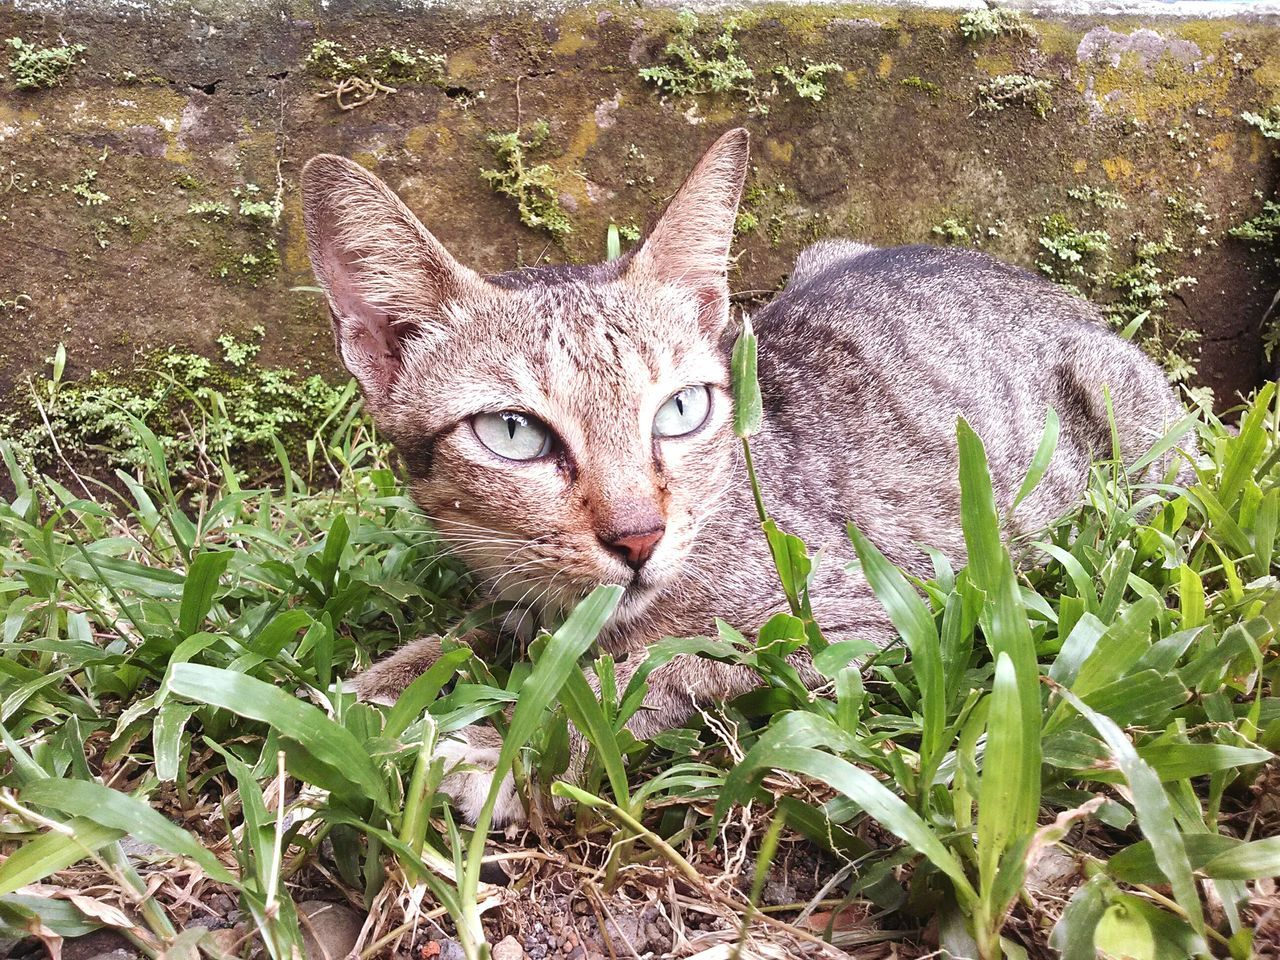 domestic cat, looking at camera, pets, portrait, animal themes, domestic animals, one animal, feline, mammal, plant, whisker, nature, day, growth, no people, flower, outdoors, leaf, alertness, sitting, close-up